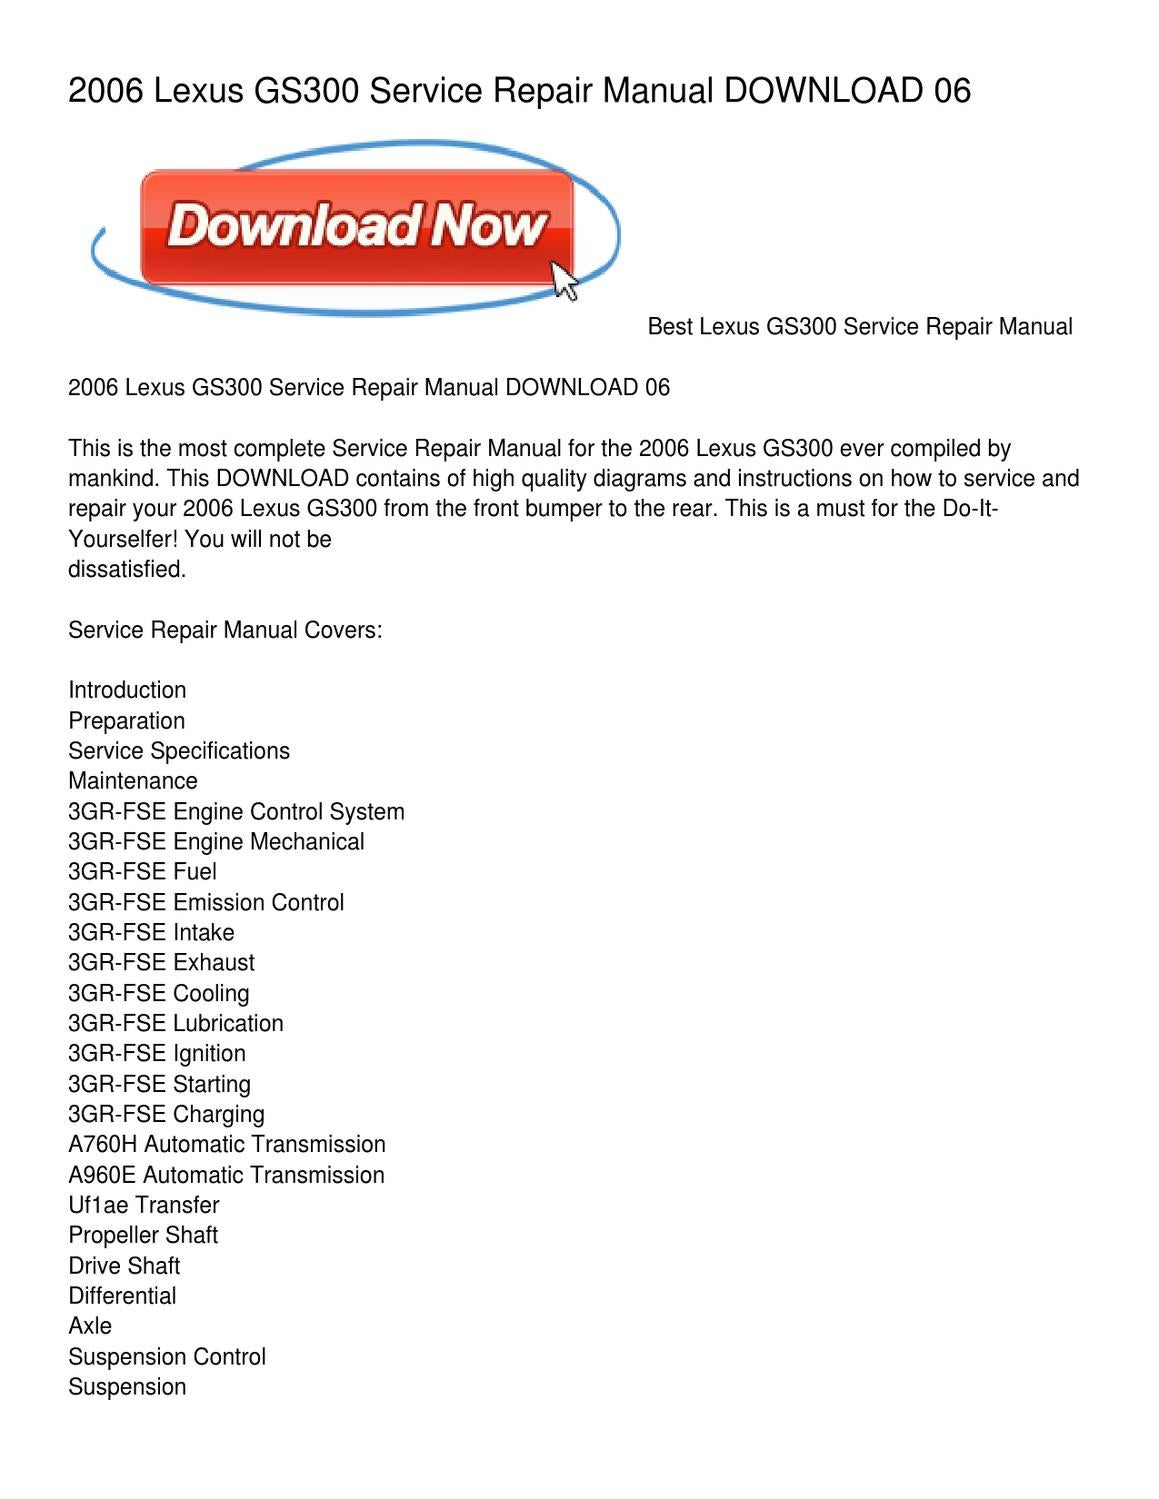 2006 Lexus Gs300 Service Repair Manual Download 06 By Pamela Howard Electrical Wiring Diagram Issuu